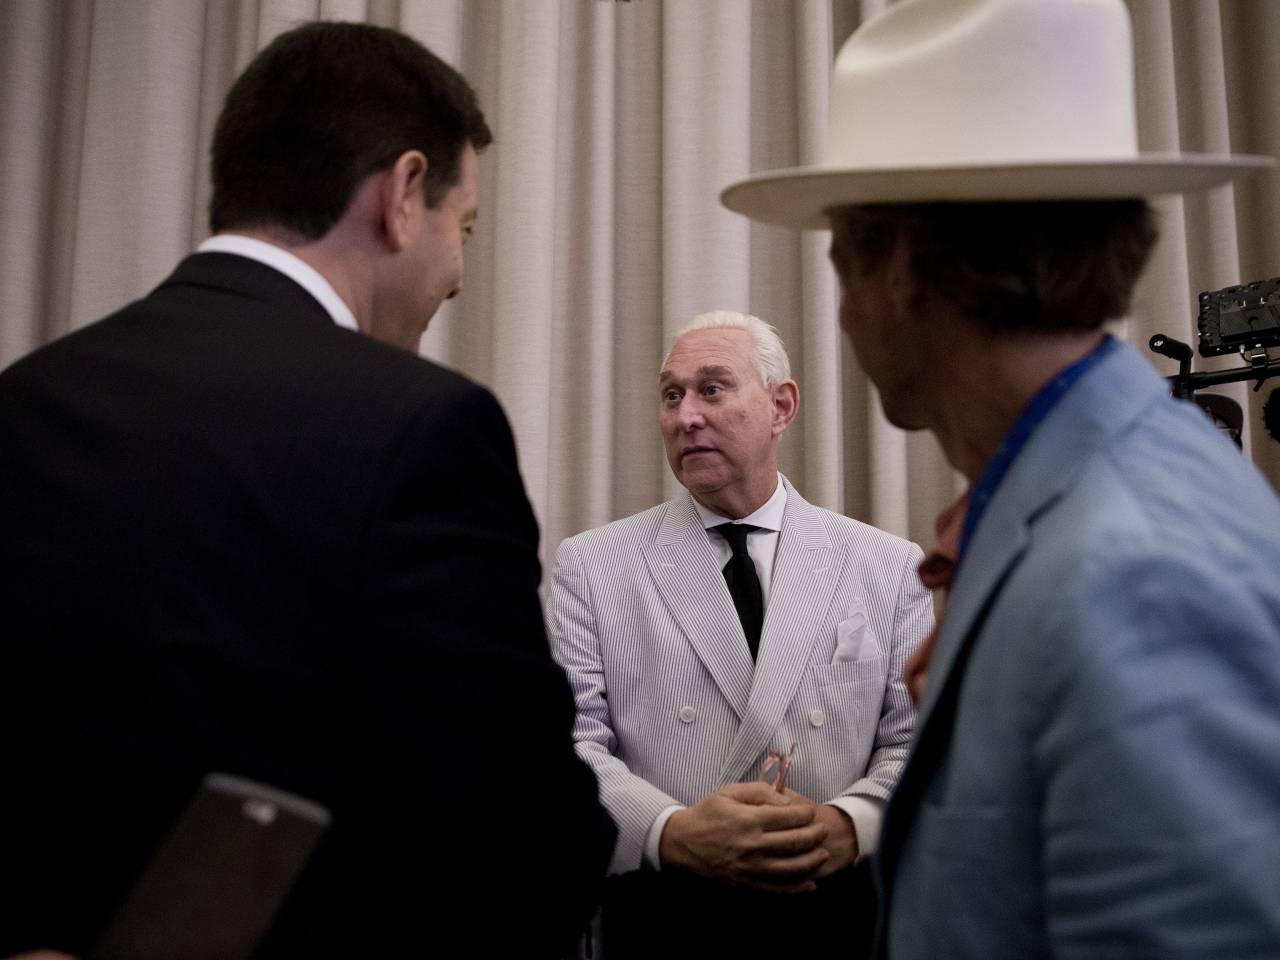 Roger Stone responds to Comey hearing, denies claims of Russian Federation collusion